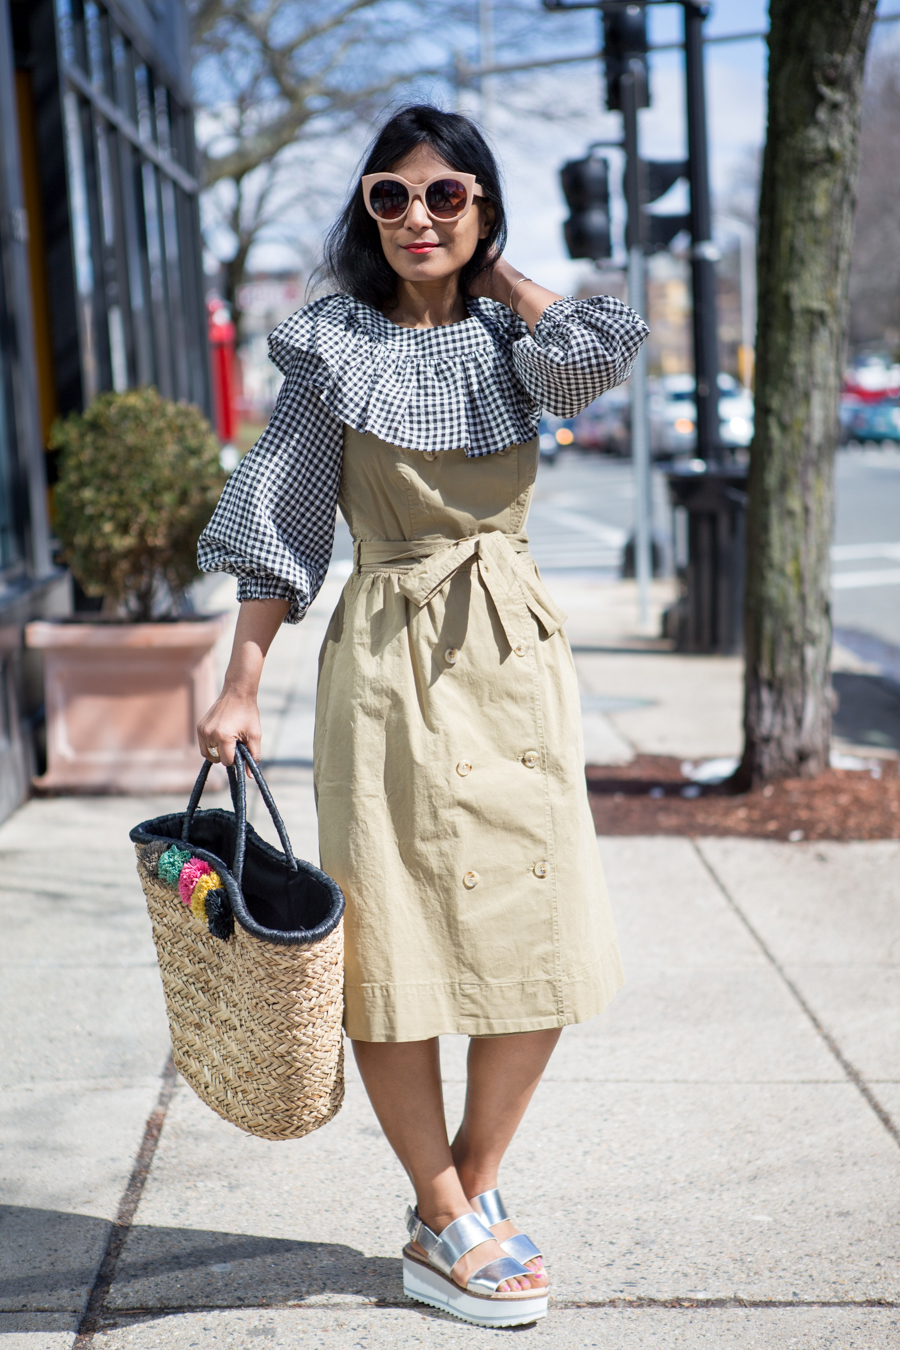 spring style, petites, petite blogger, petite fashion, jcrew, topshop, spring layers, spring fashion, spring lookbook, momstyle, mom blogger, fashion over 40, feminine style